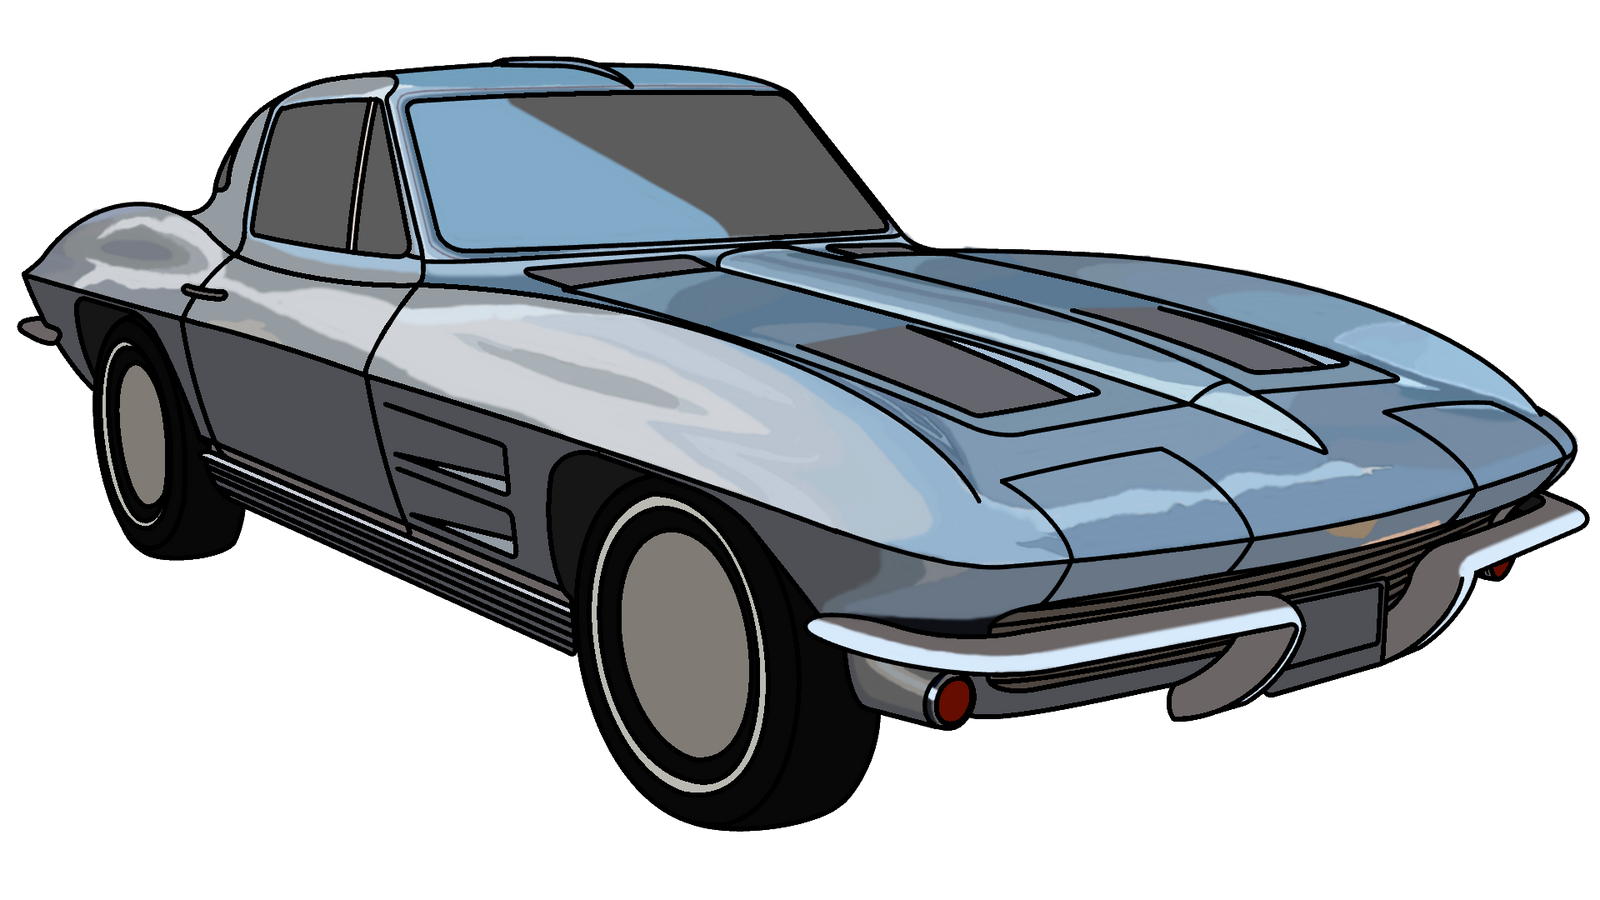 '63 Corvette by Mechaghostman2